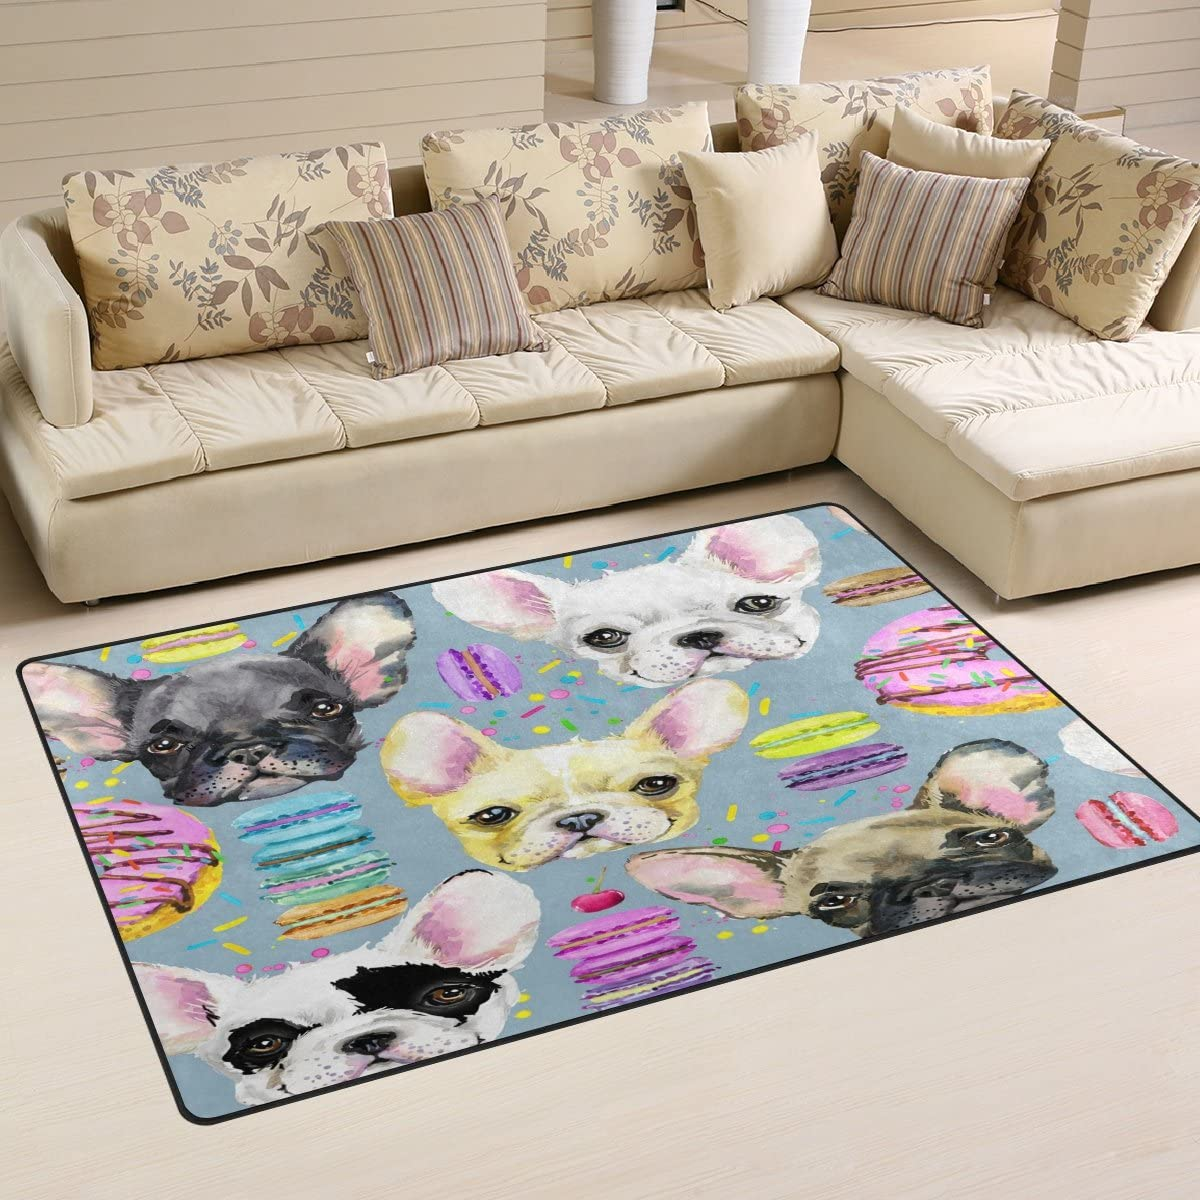 WOZO Watercolor Donut Cherry Chihuahua Dog Area Rug Rugs Non-Slip Floor Mat Doormats for Living Room Bedroom 60 x 39 inches